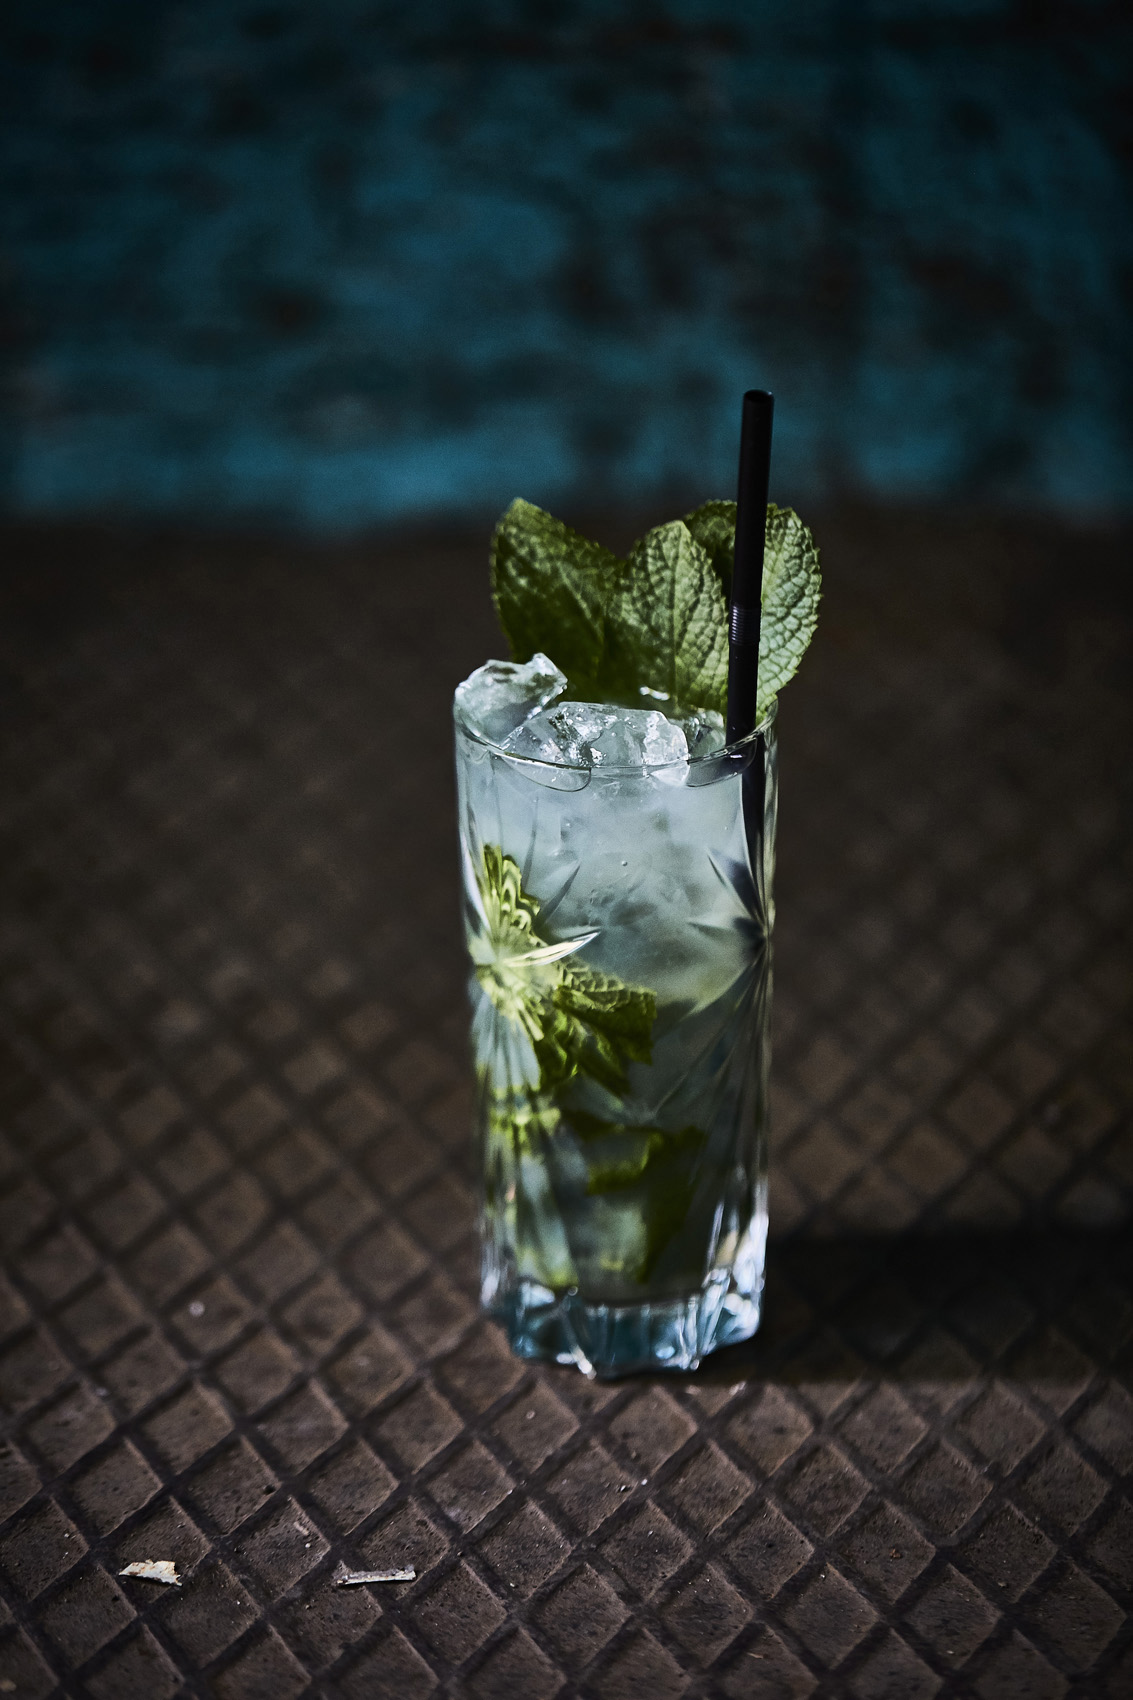 SteveRyan_Photographer_Drink_Cocktails_Mojito_09